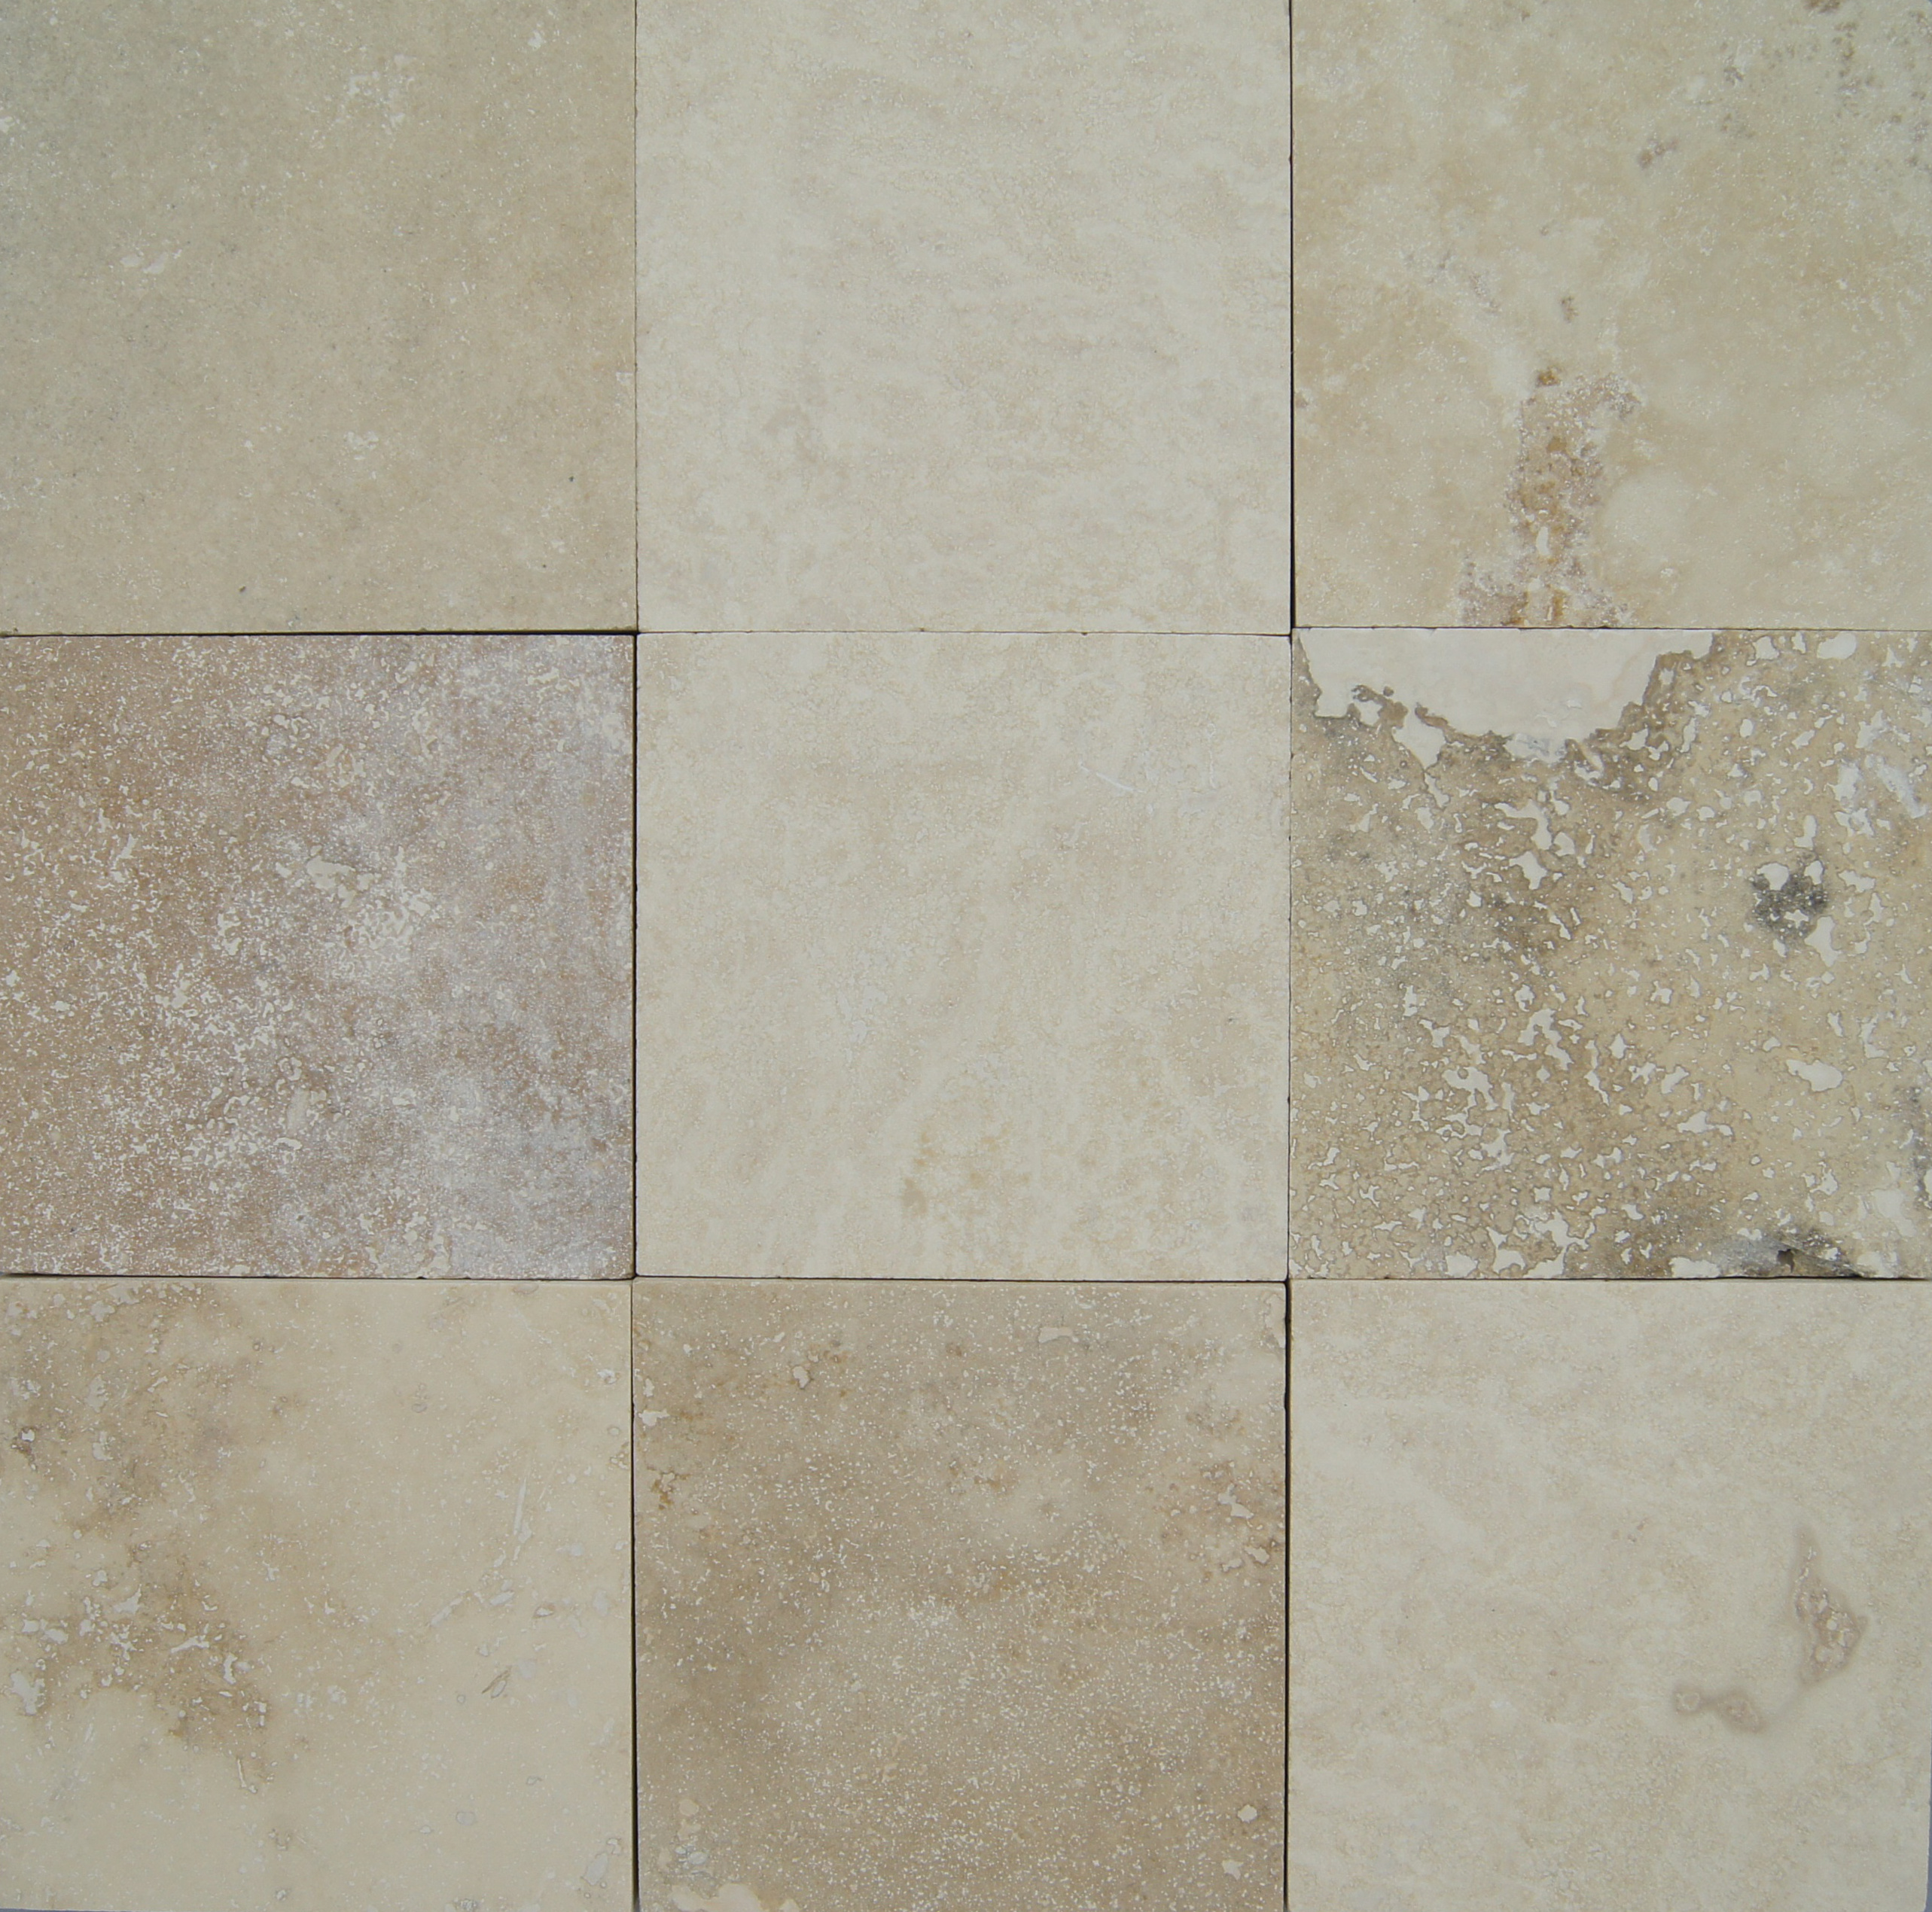 Tiramisu petraslate tile stone is a wholesale supplier of tiramisu dailygadgetfo Gallery